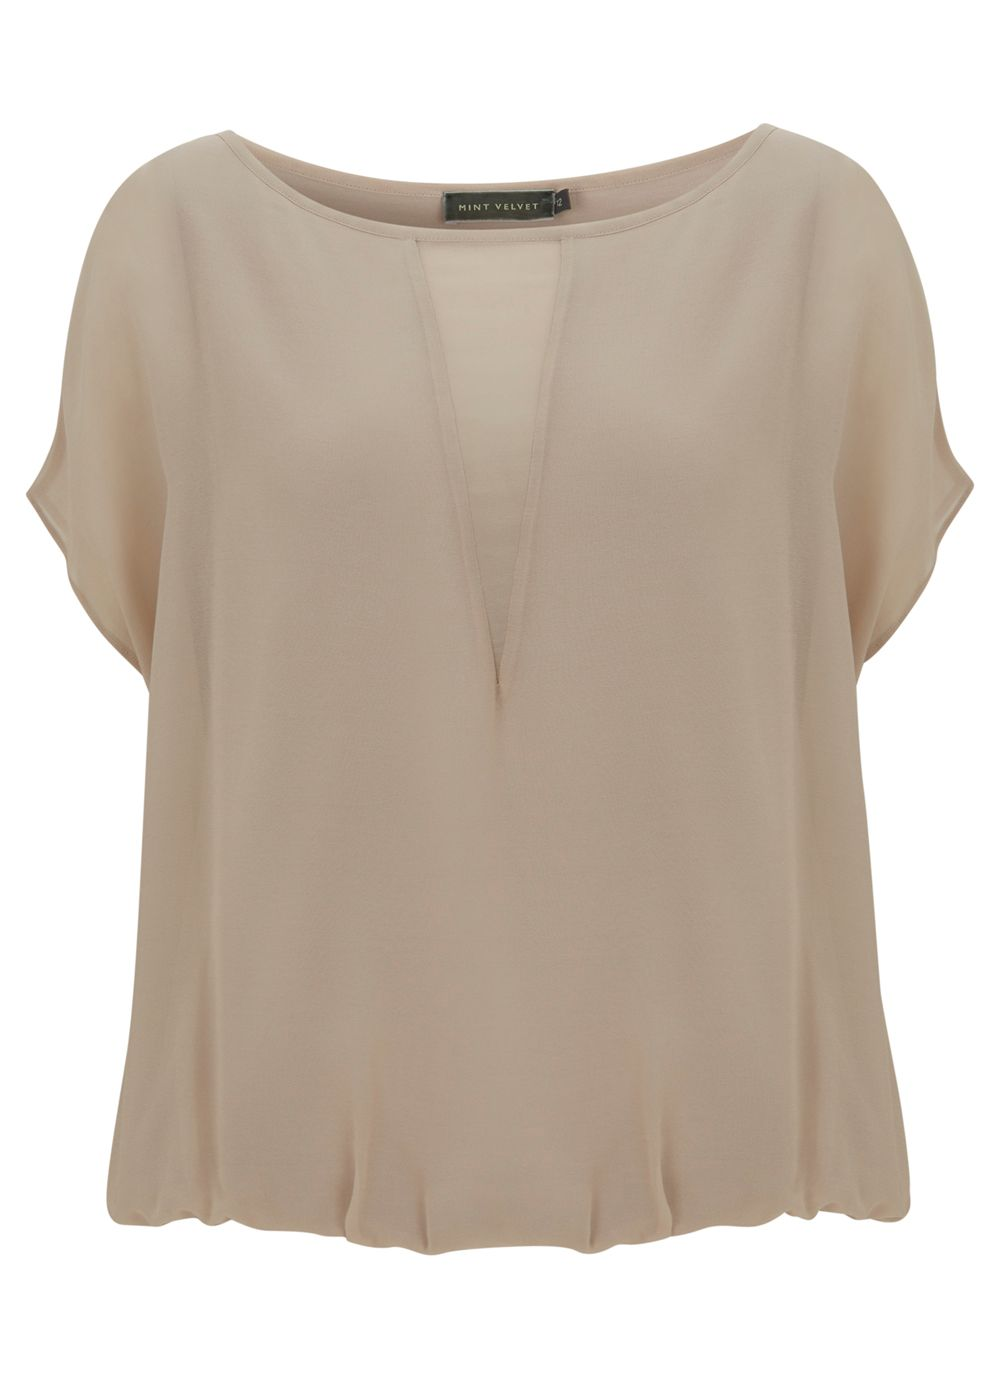 Putty sheer blouson top